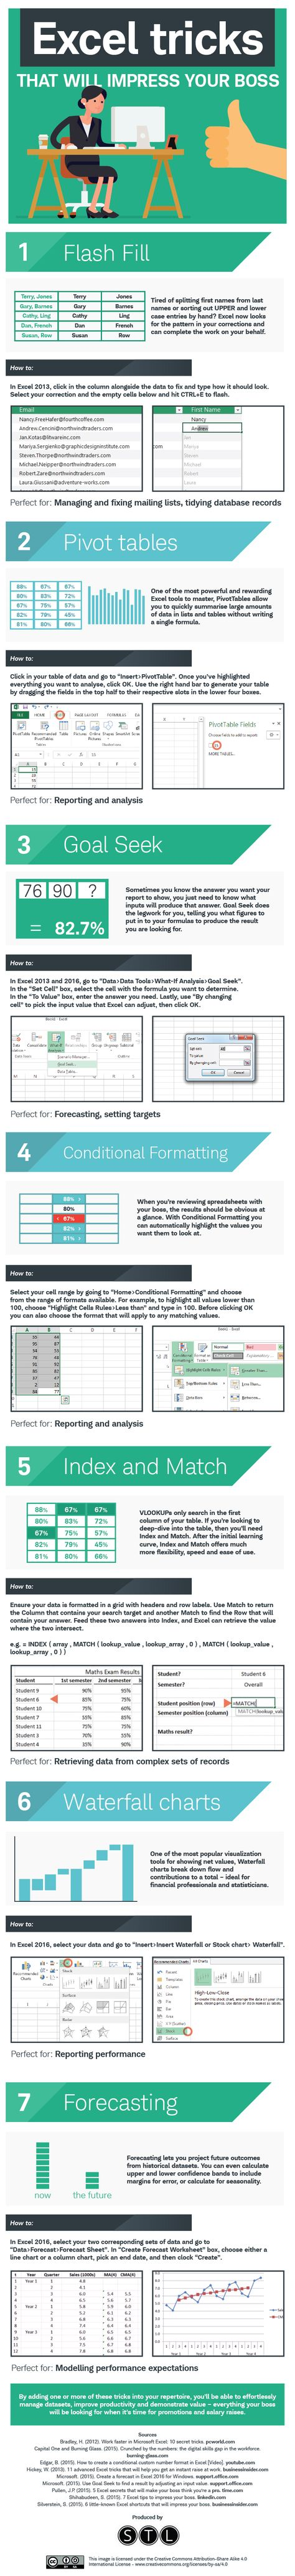 Seven Useful Microsoft Excel Features You May Not Be Using http://weathertightroofinginc.com